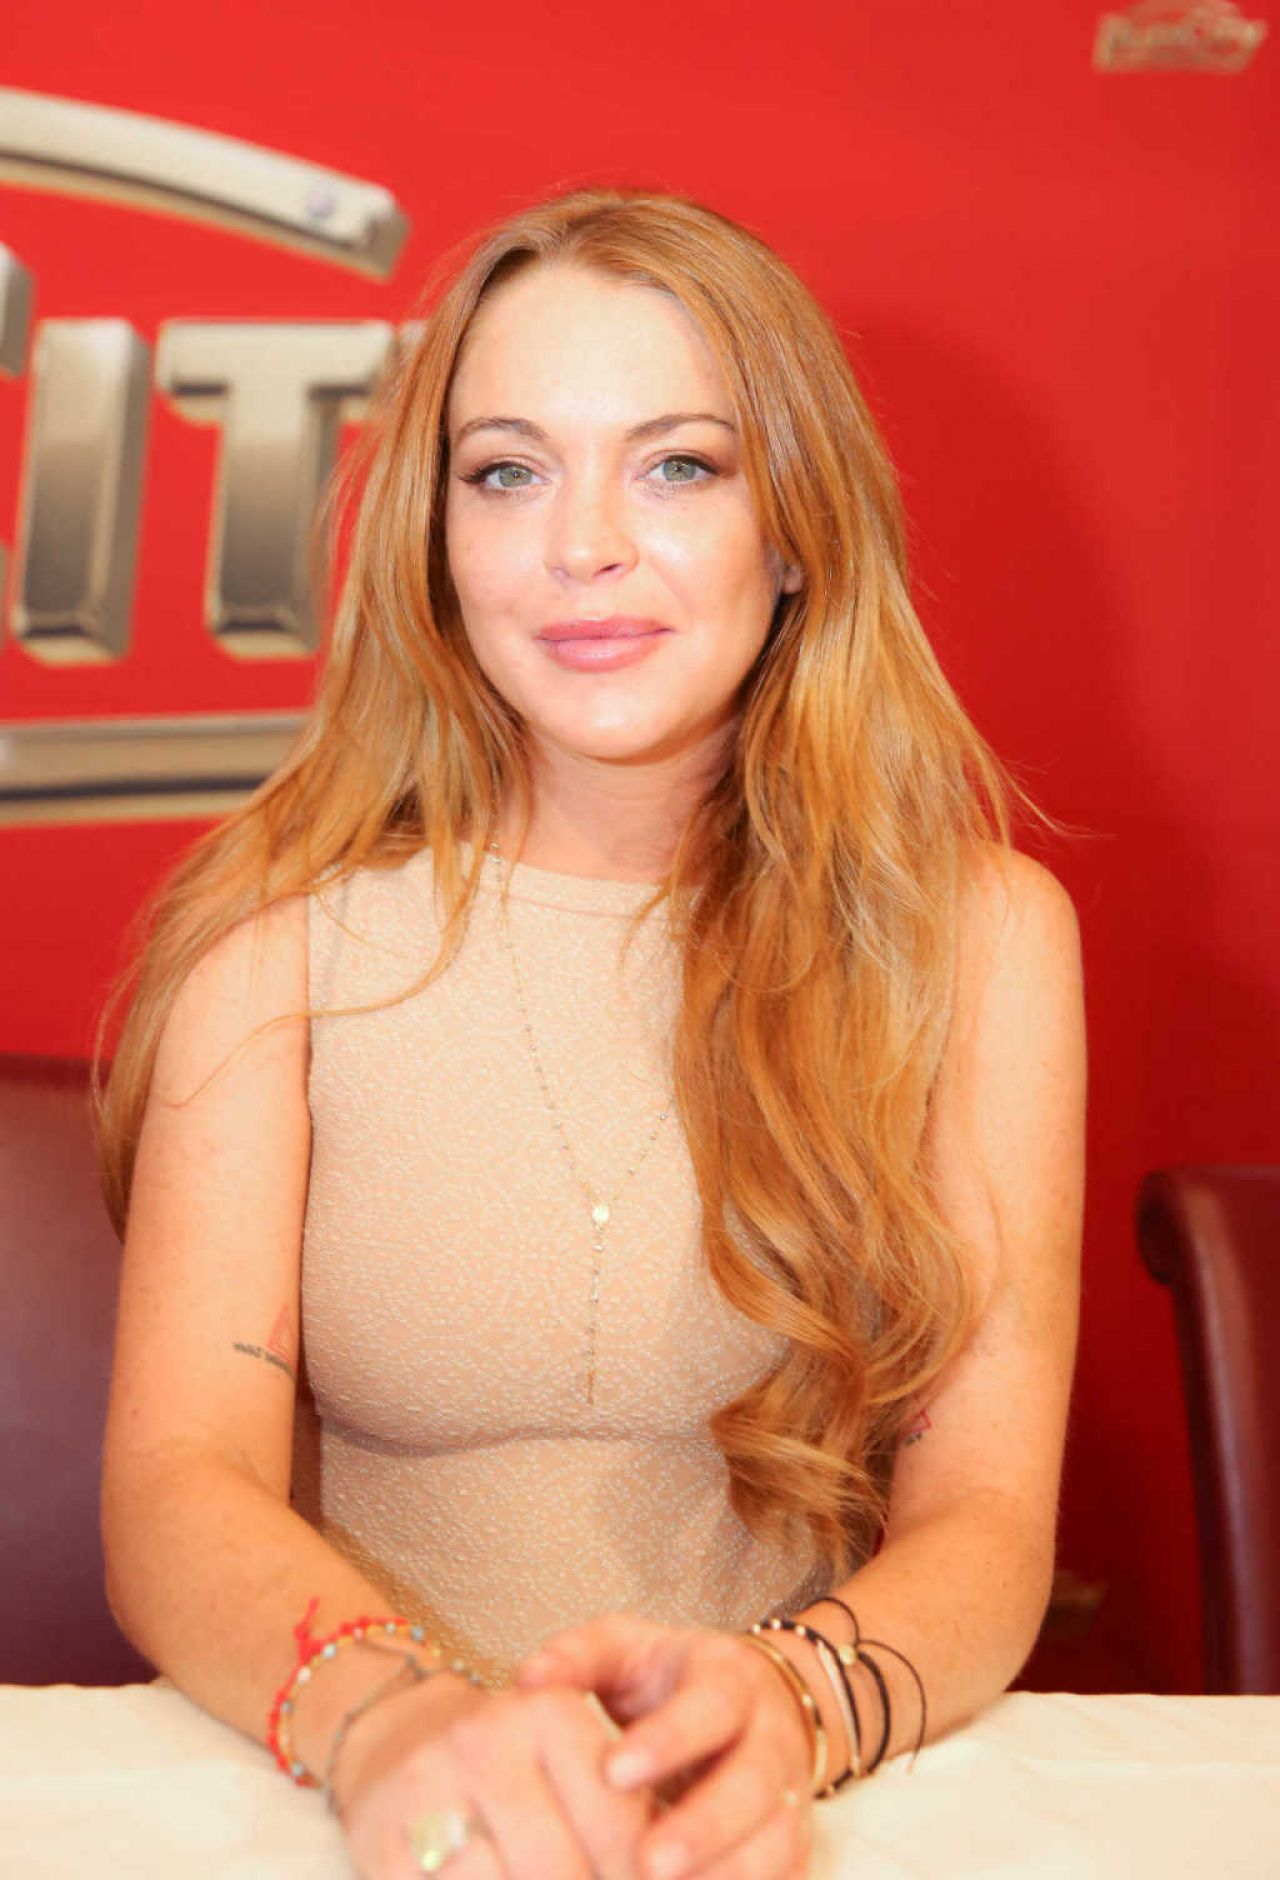 Lindsay Lohan at Weisses Fest 2014 in Linz (Austria)